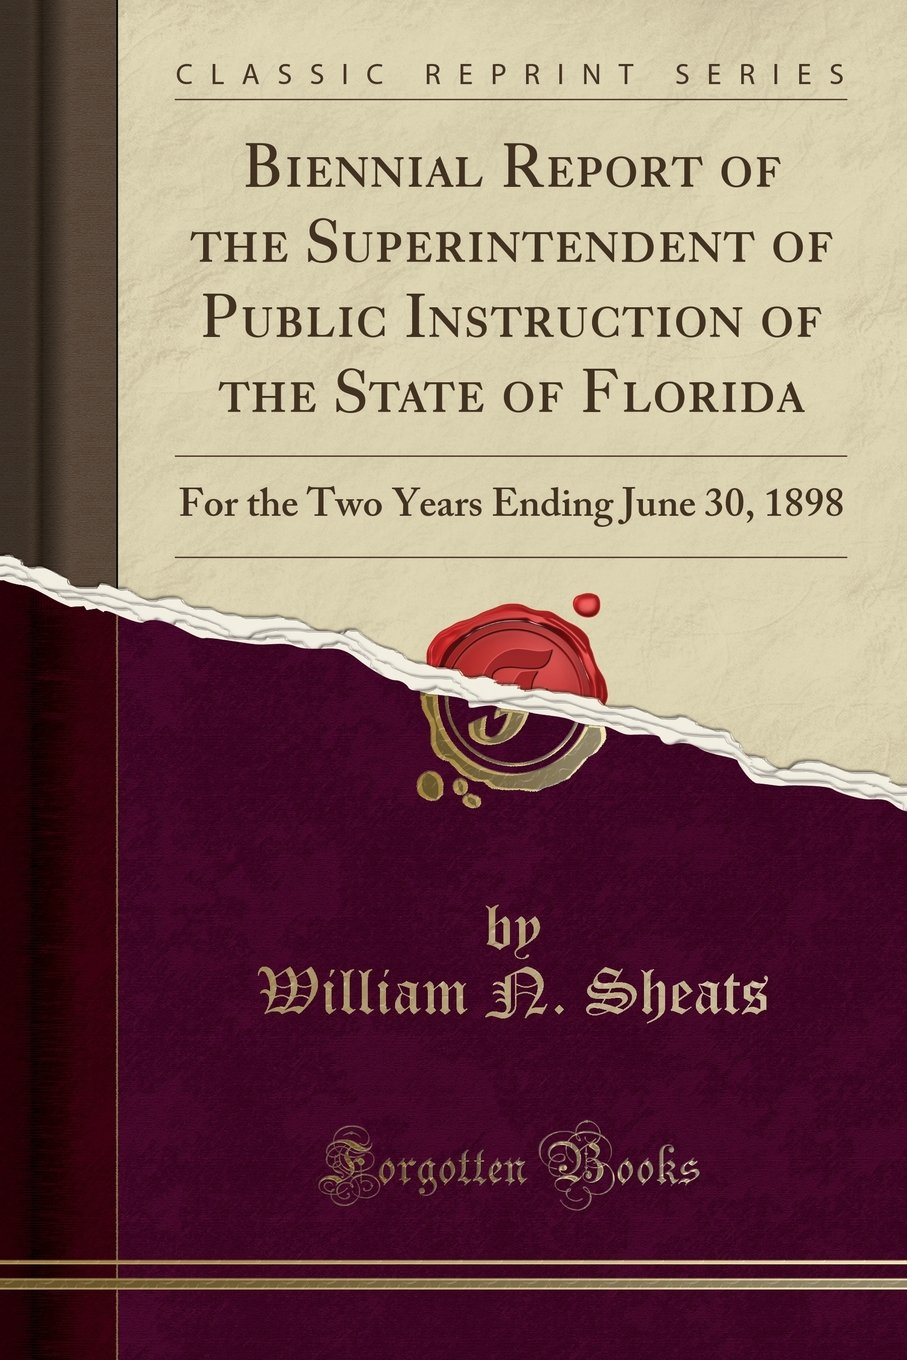 Read Online Biennial Report of the Superintendent of Public Instruction of the State of Florida: For the Two Years Ending June 30, 1898 (Classic Reprint) ebook